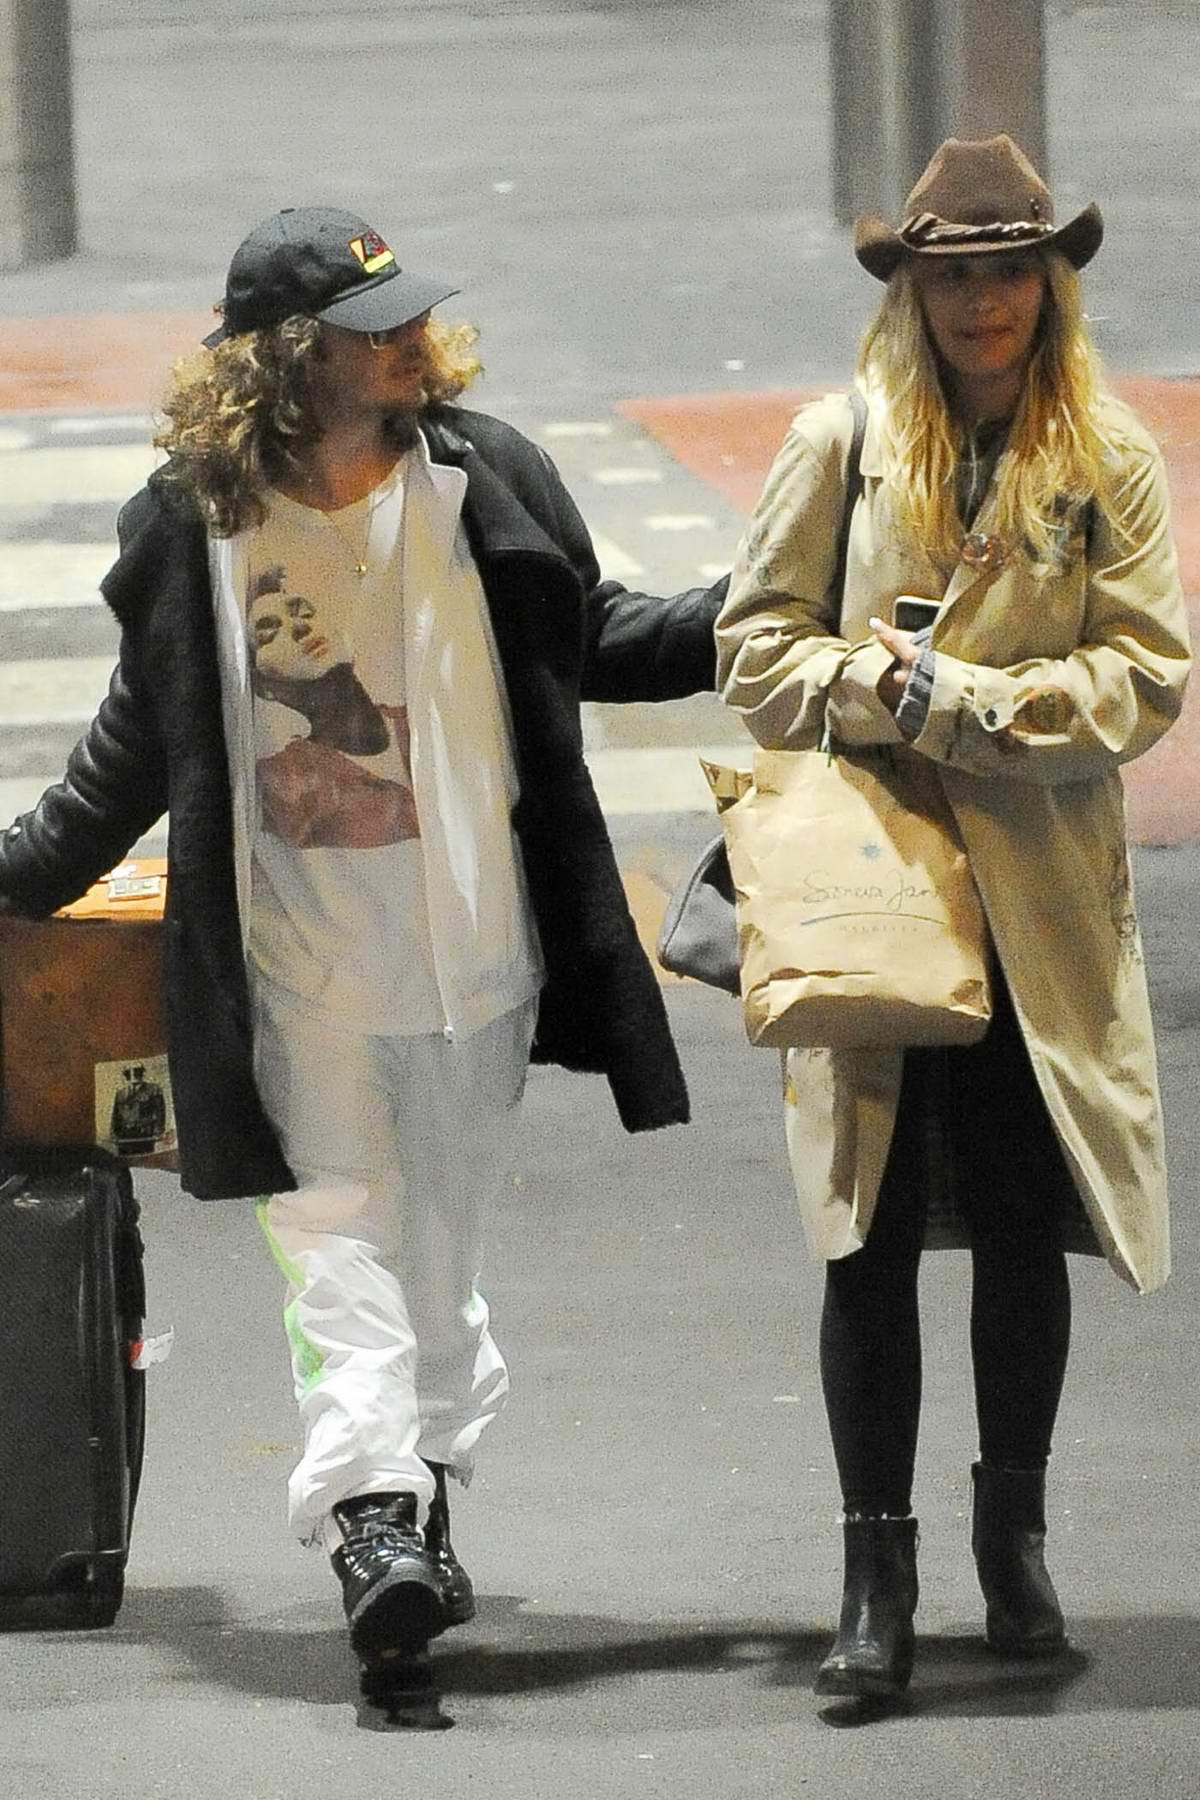 Rita Ora and boyfriend Andrew Watt arrives at Heathrow airport in London